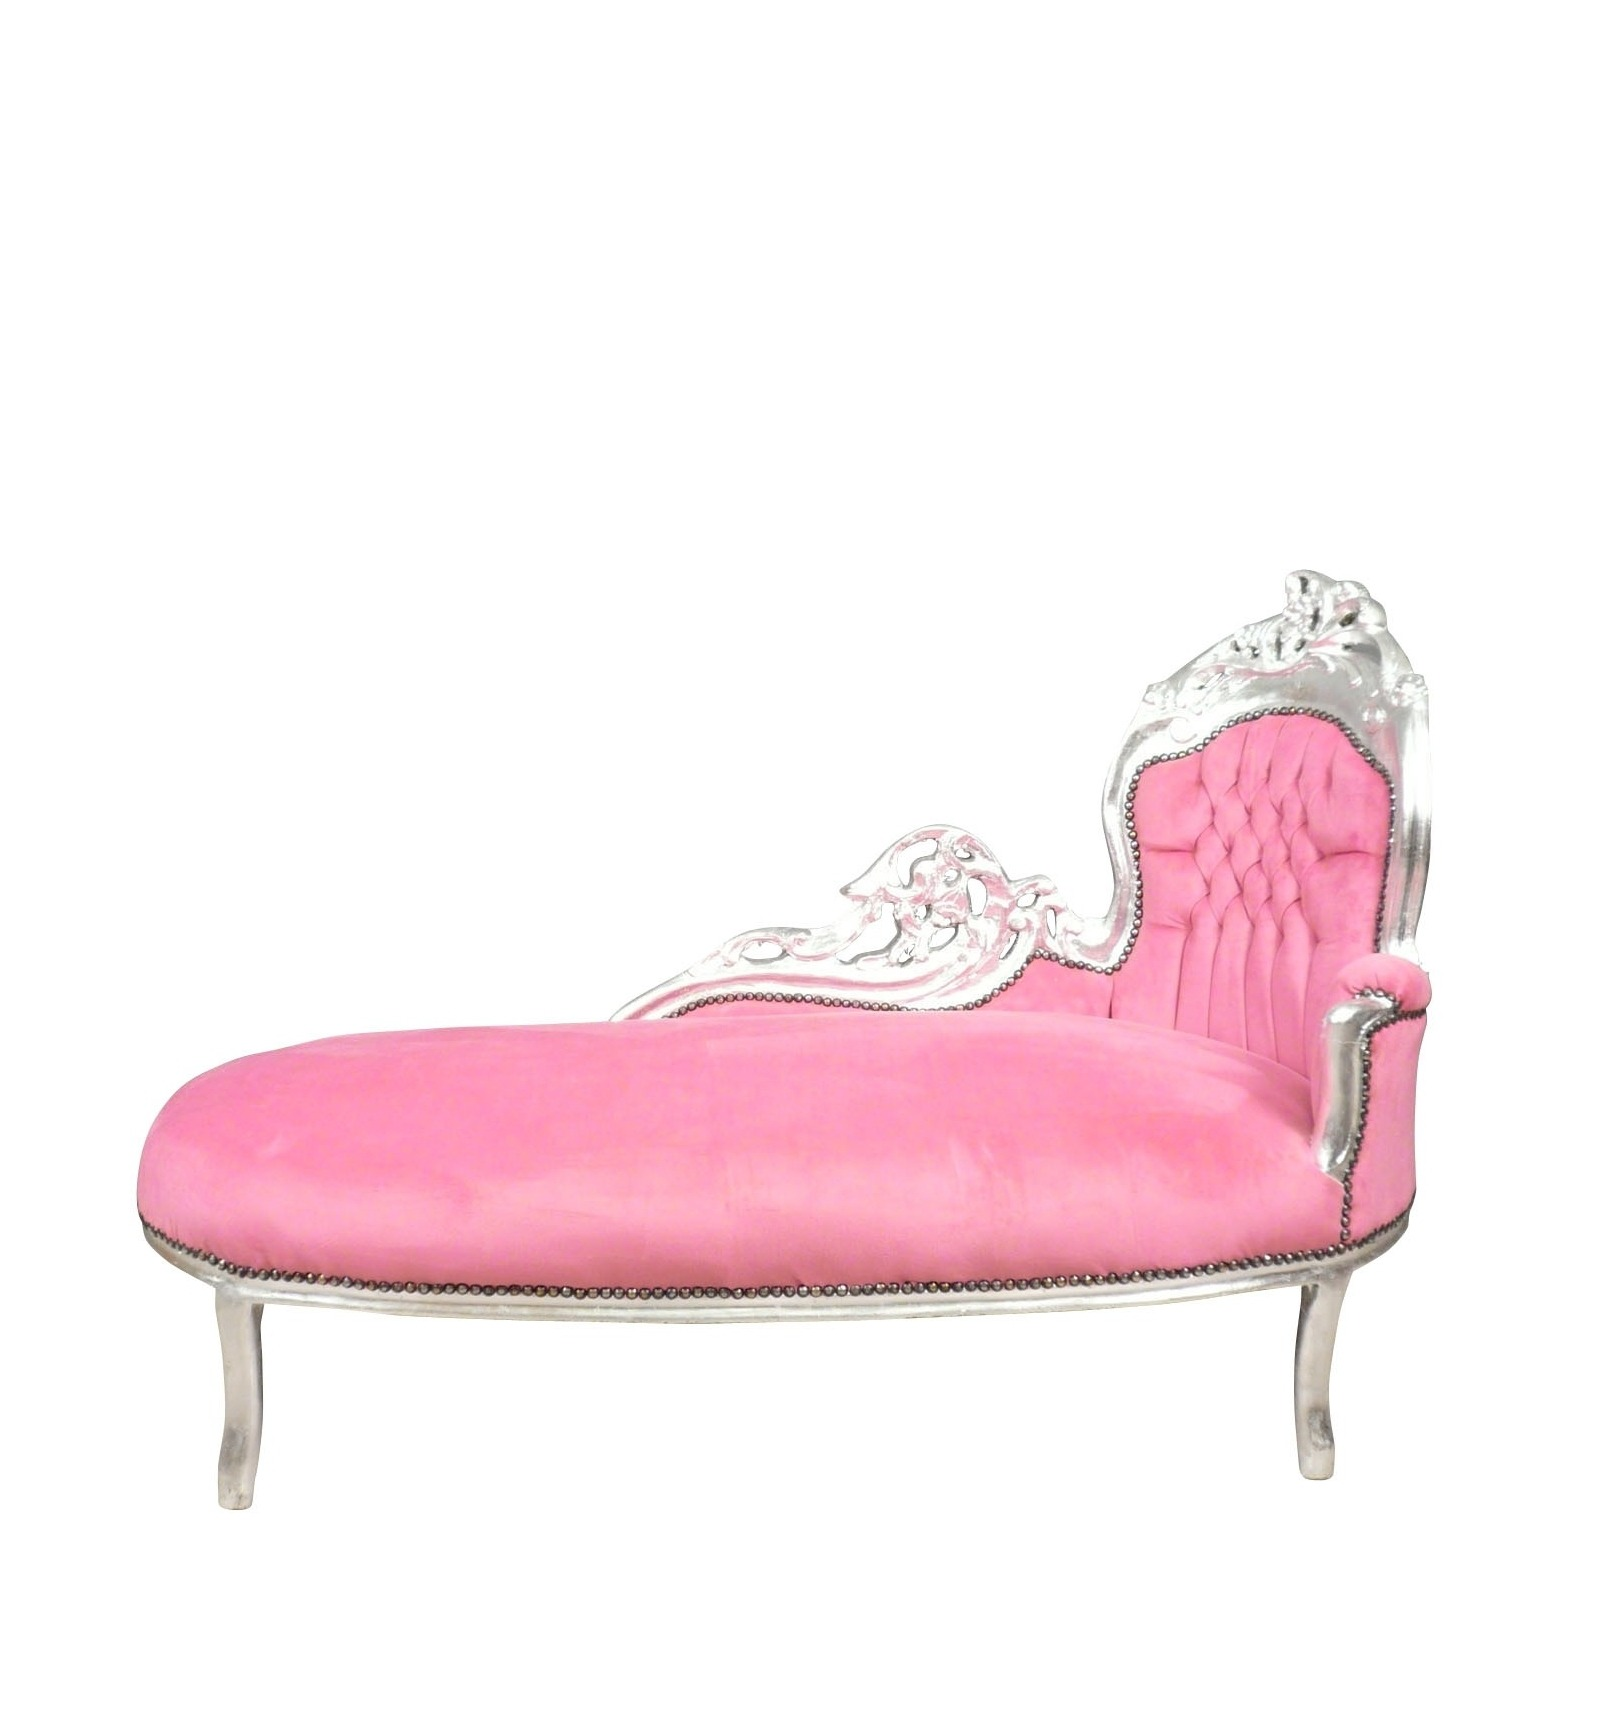 Chaise lounge baroque pink and silver armchair chair for Chaise longue de salon